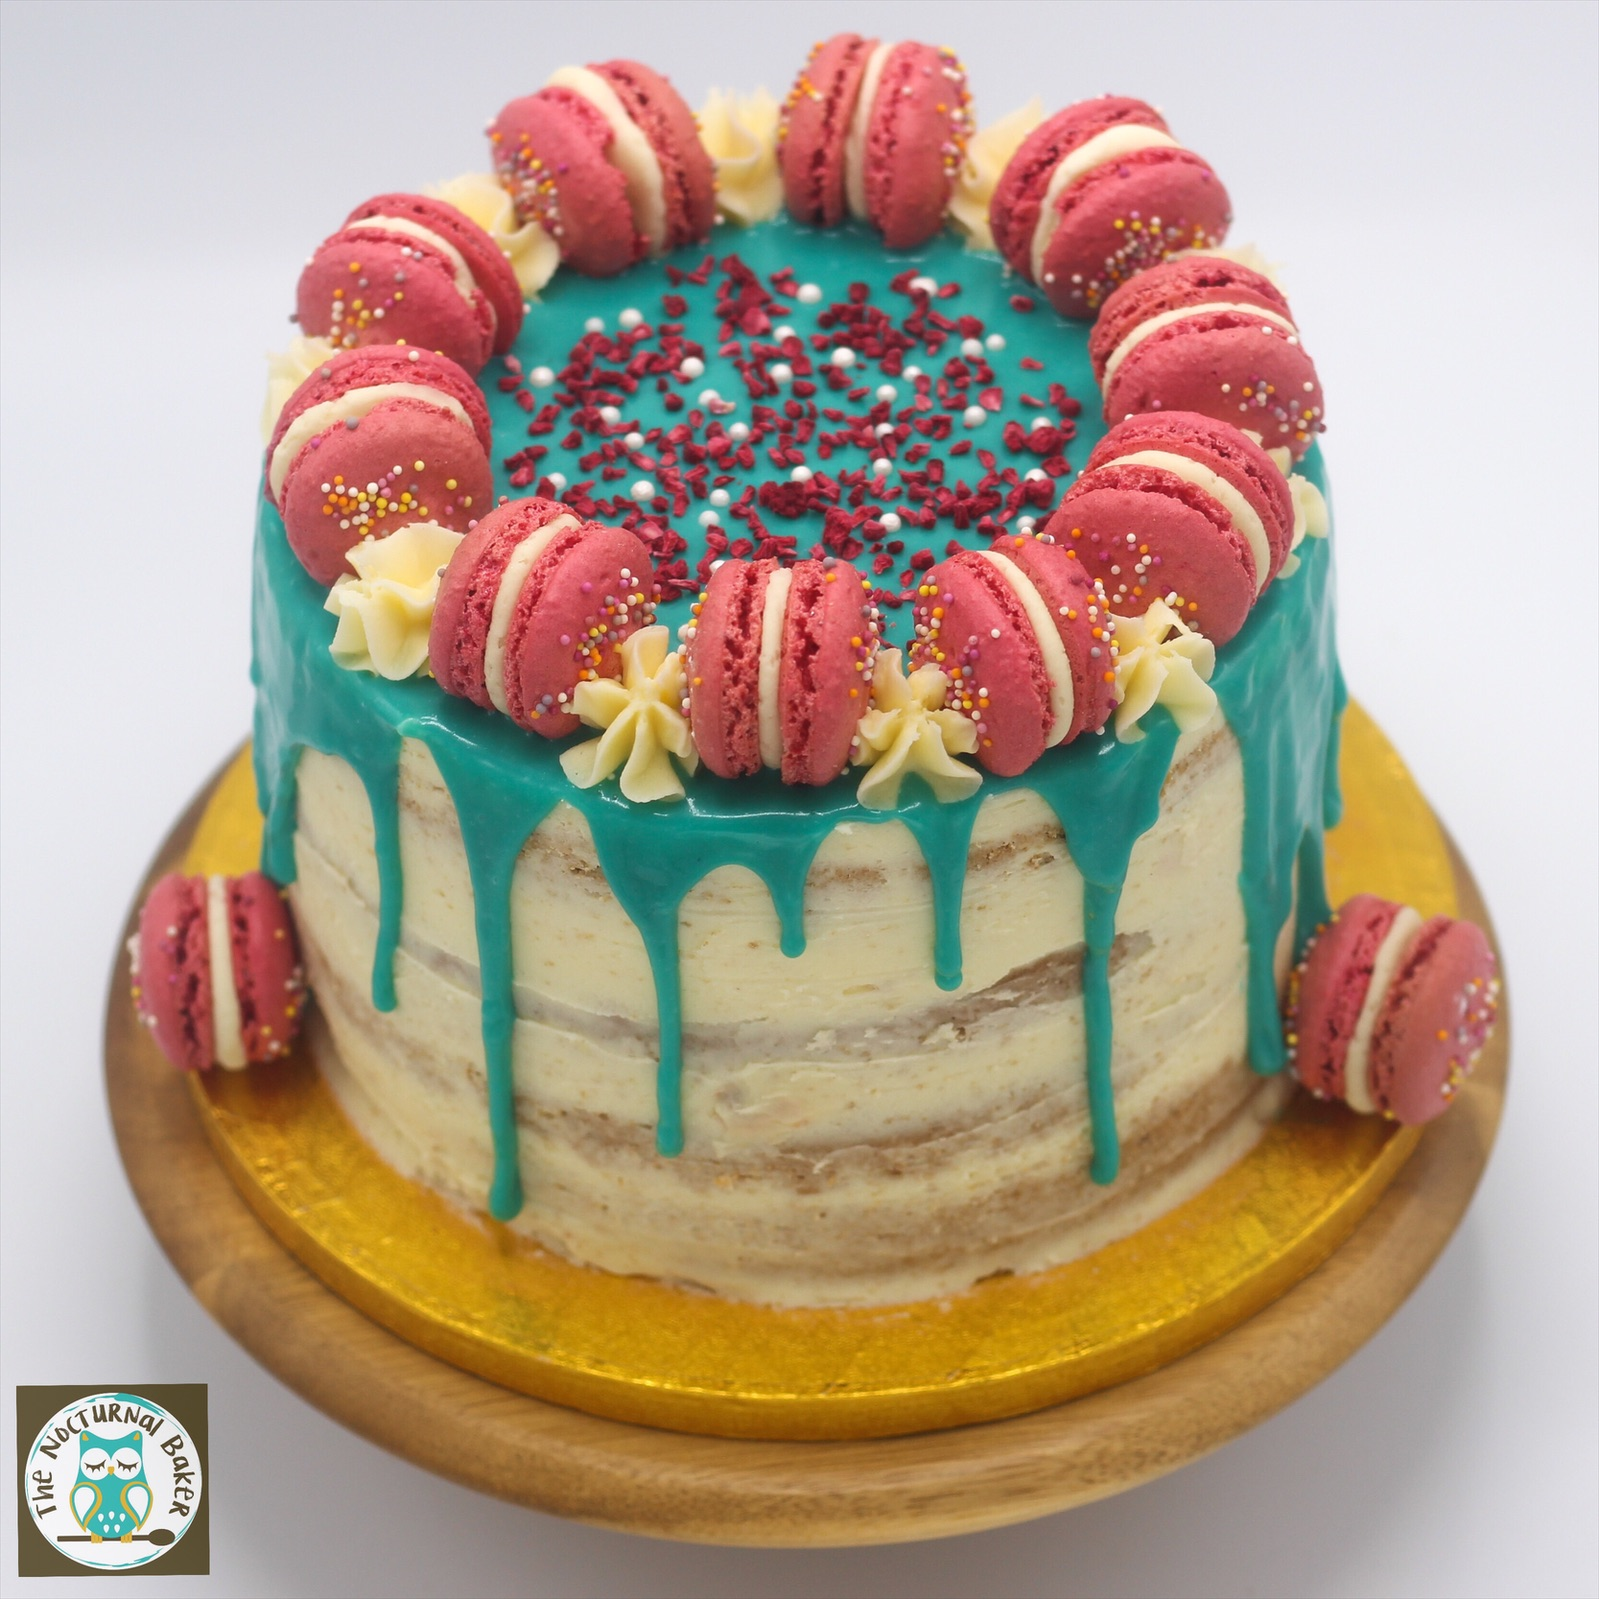 """Buttercream Ganache DRip Cake - 6"""" from £388"""" from £4110"""" from £4712"""" from £54Available in a range of flavours and any colour combination.Drip cakes include a minimum 4 inch tall, four layer, sponge cake topped with a ganache drip, presented on a cake drum and stored in a lidded cake box.You can top them with your favourite chocolates, lollipops, pic n mix or homemade macarons. Prices start from £10."""